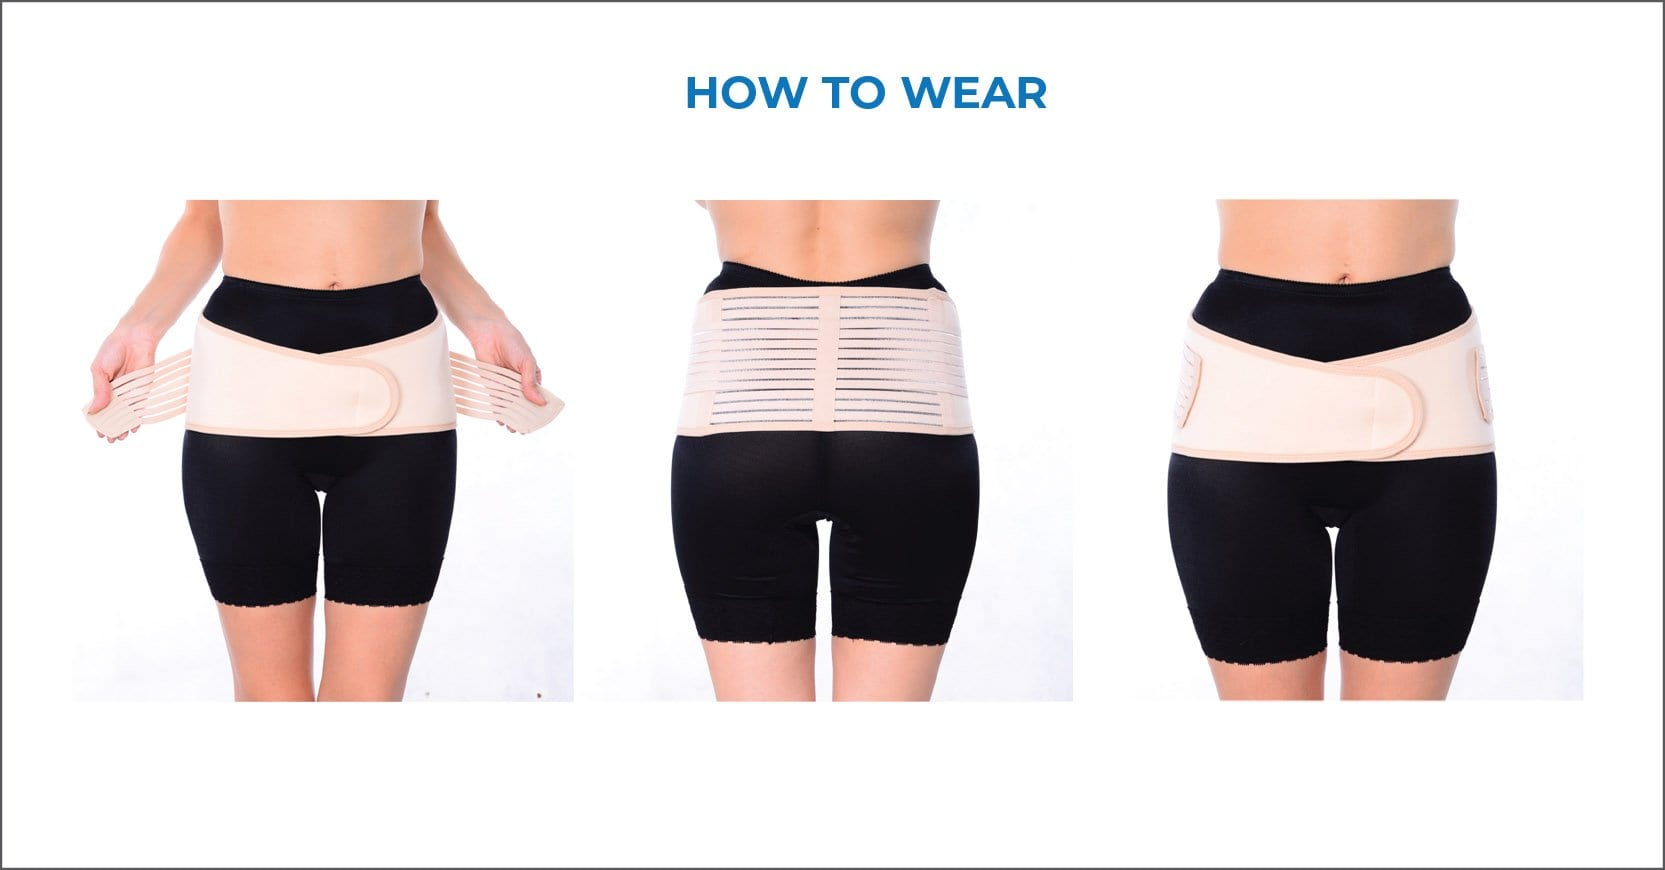 How to wear for maternity belt